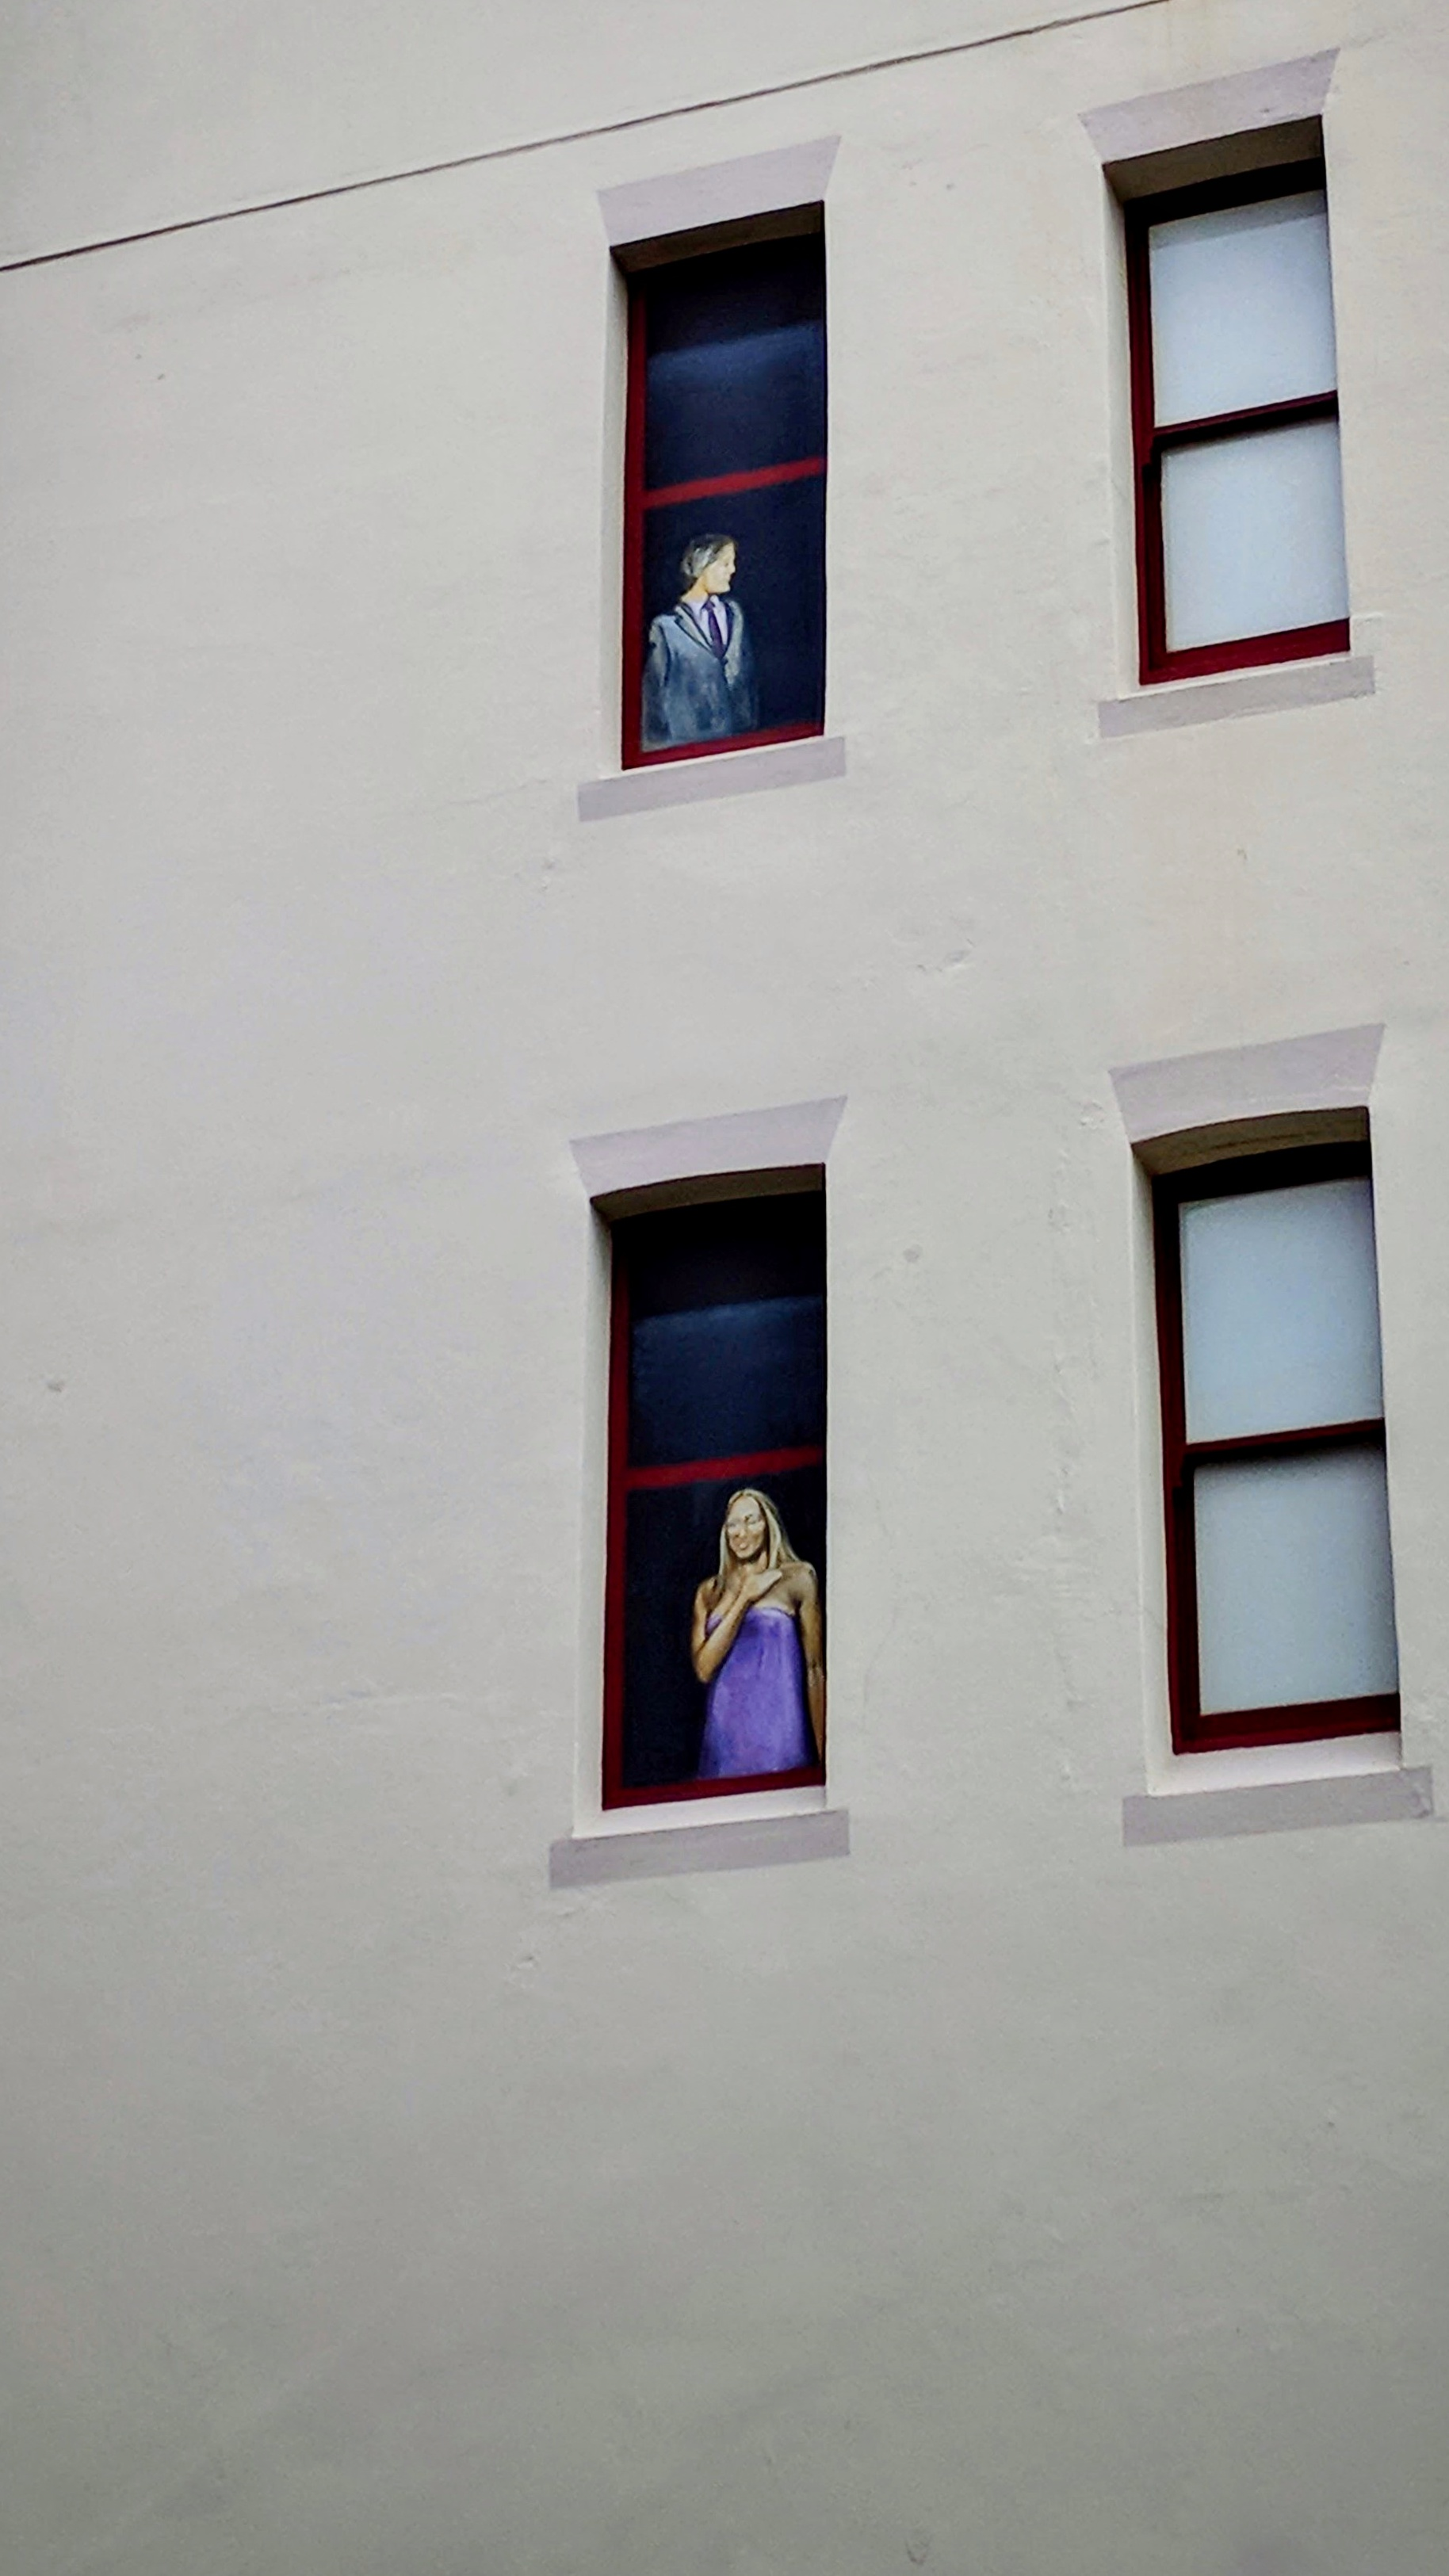 Painted window people on a building